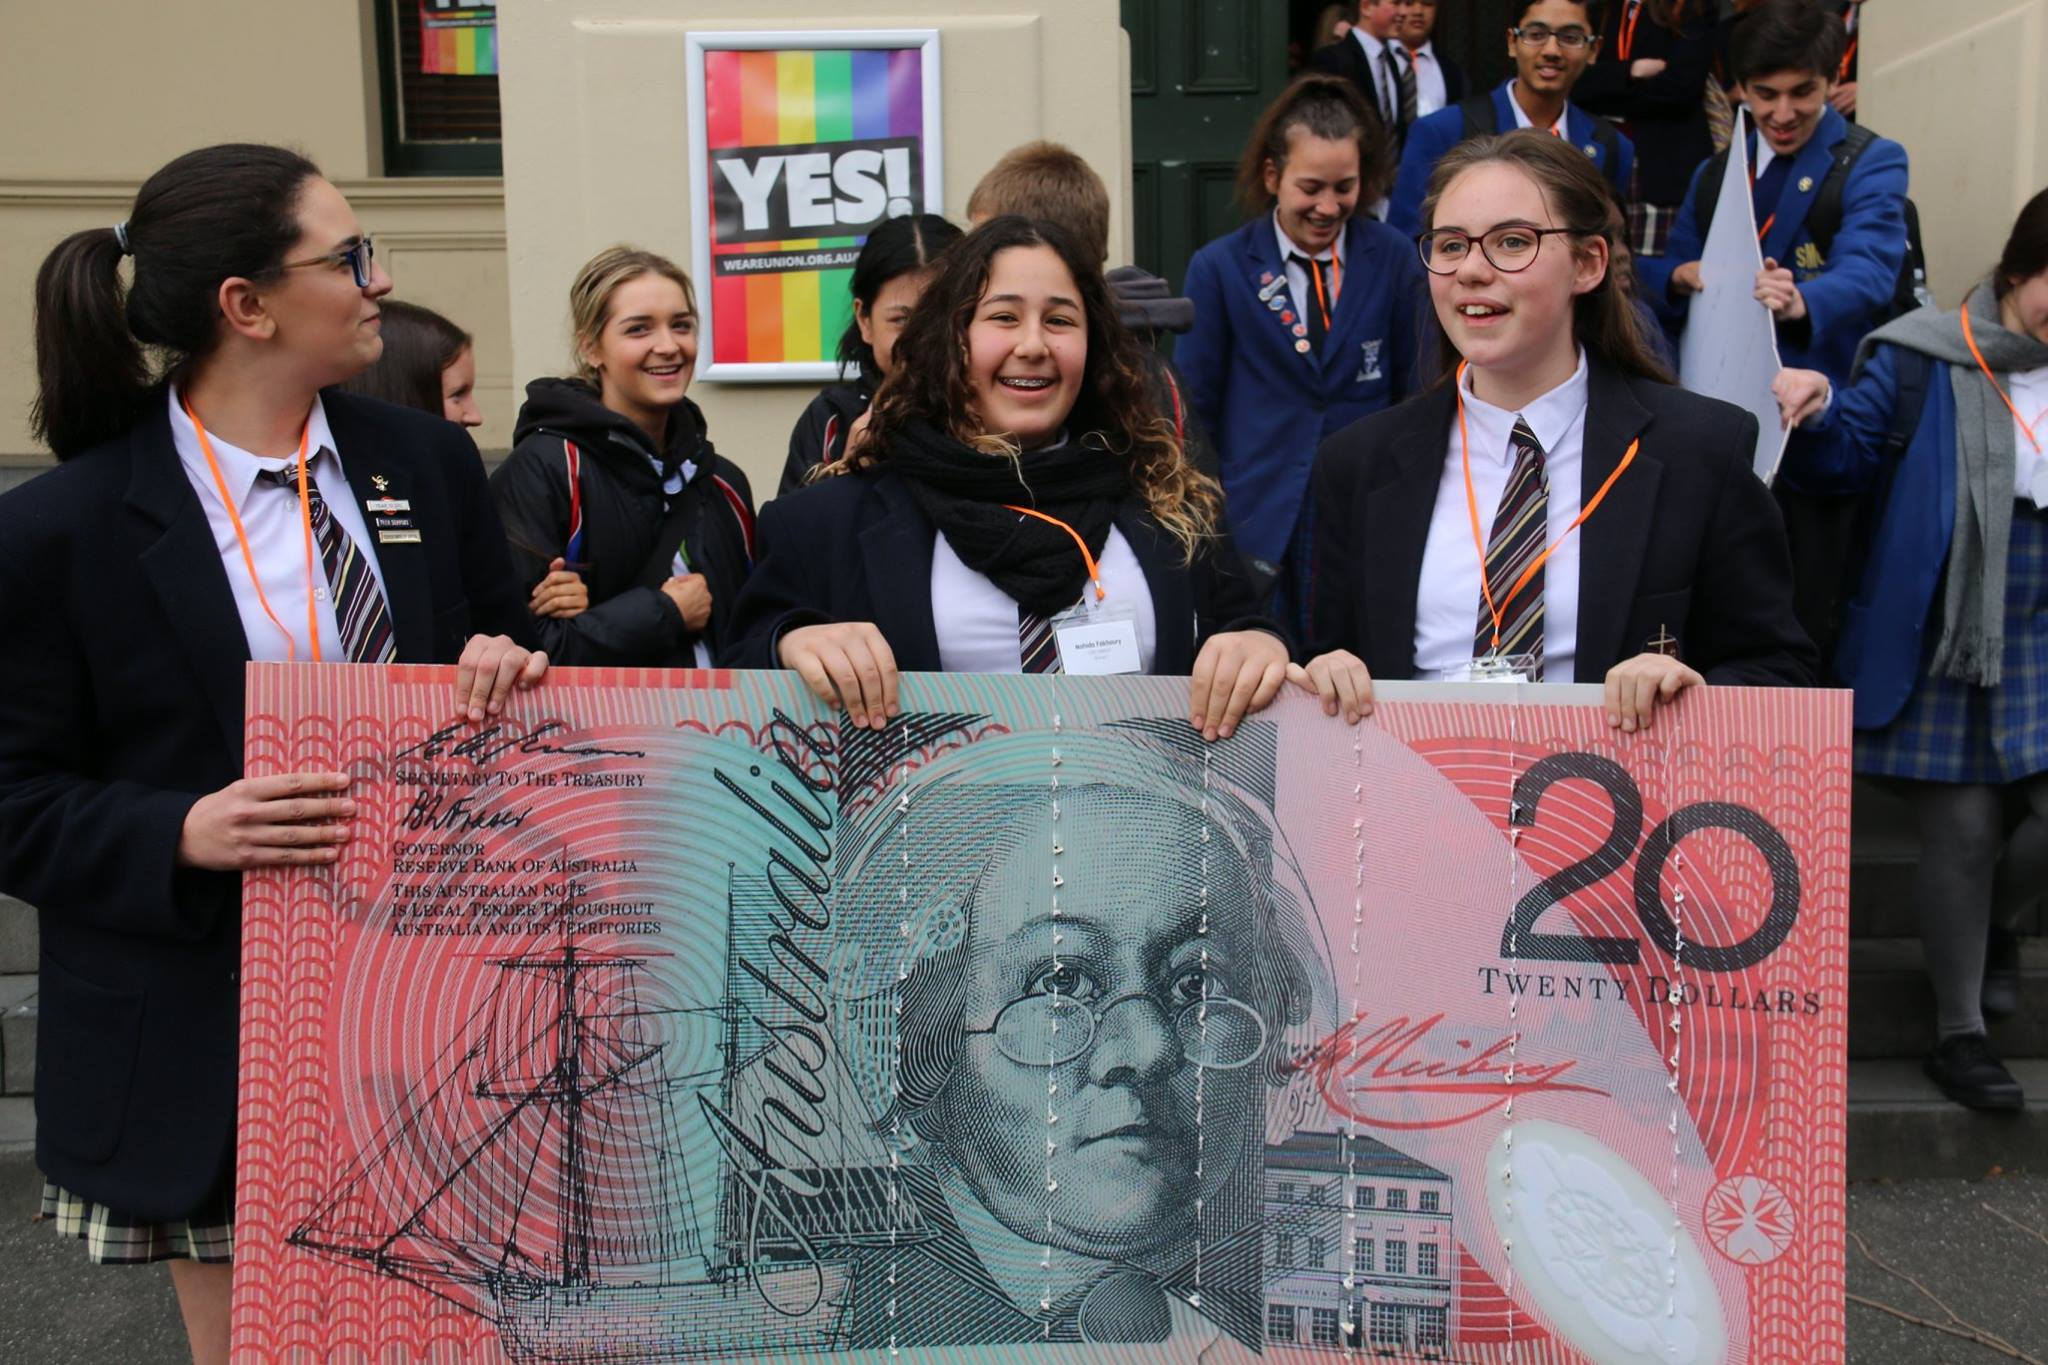 Three smiling high school students holding oversized image of $20 bill